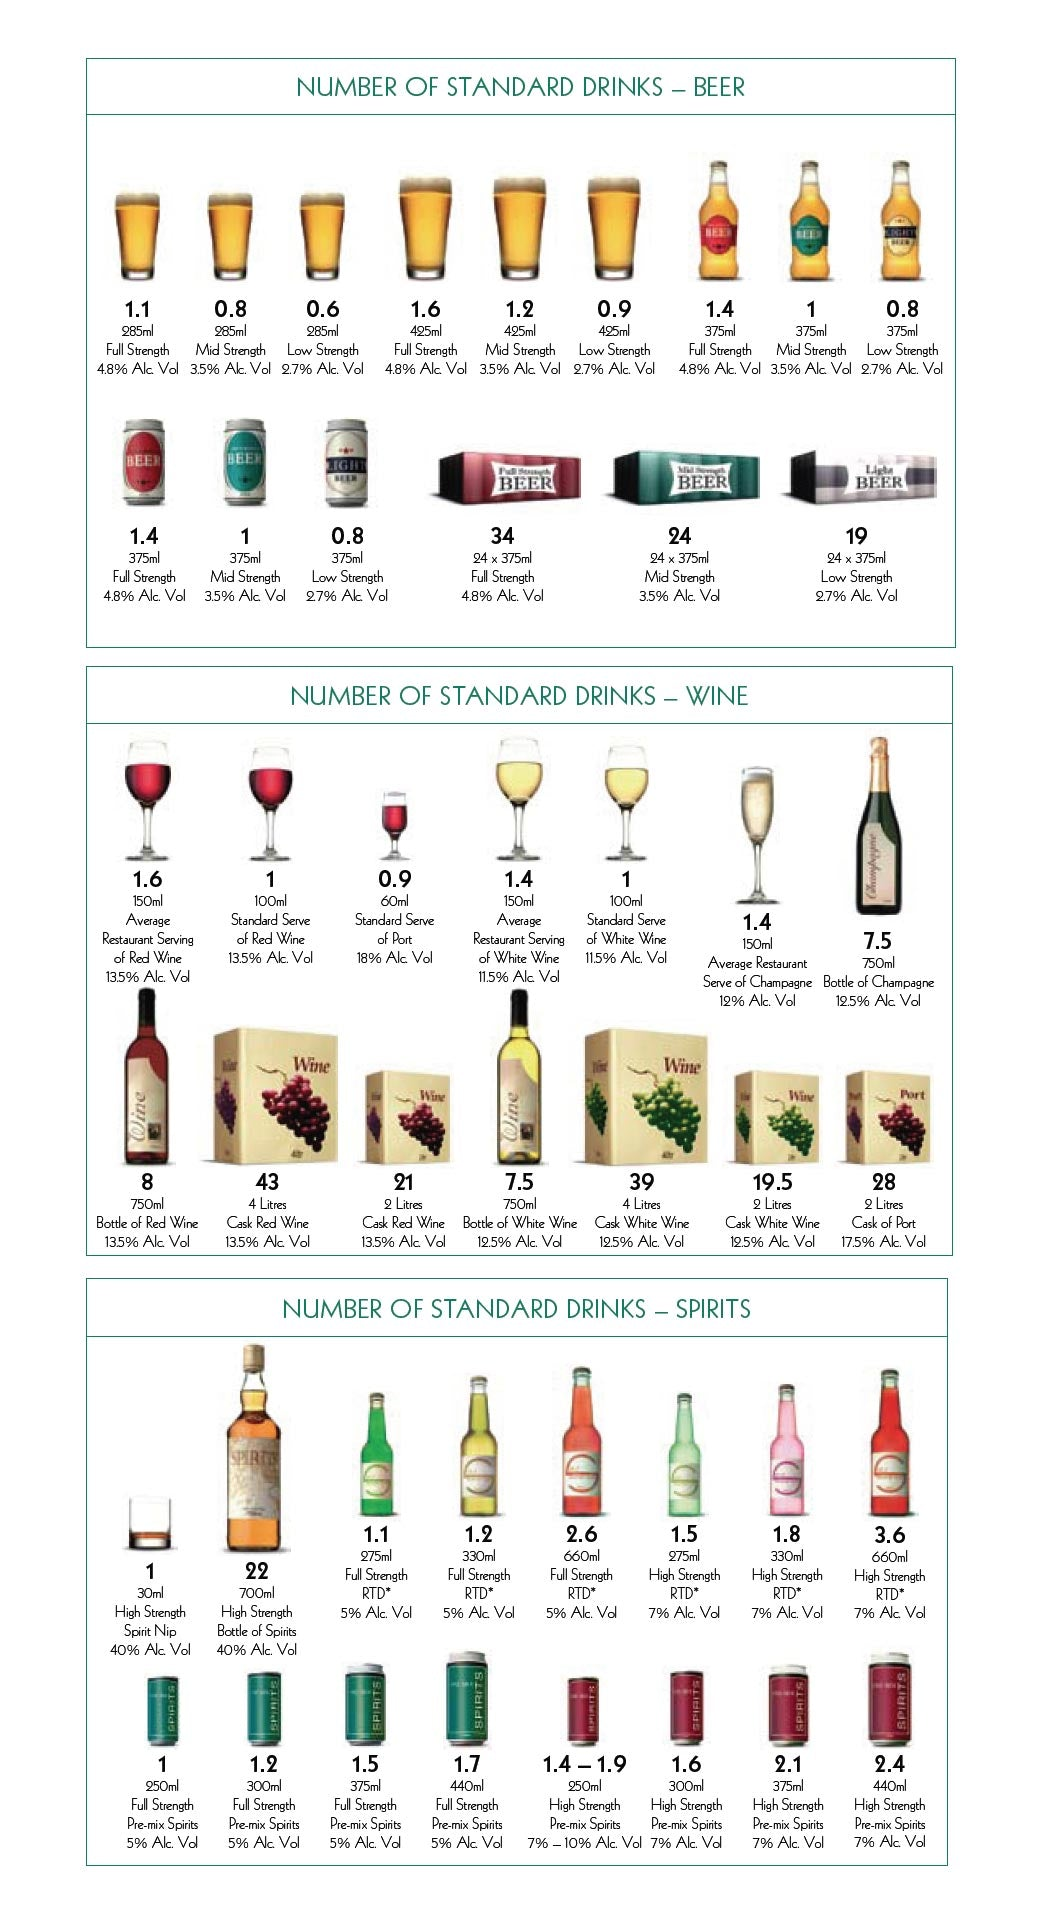 Standard drinks and serving sizes in Alcohol